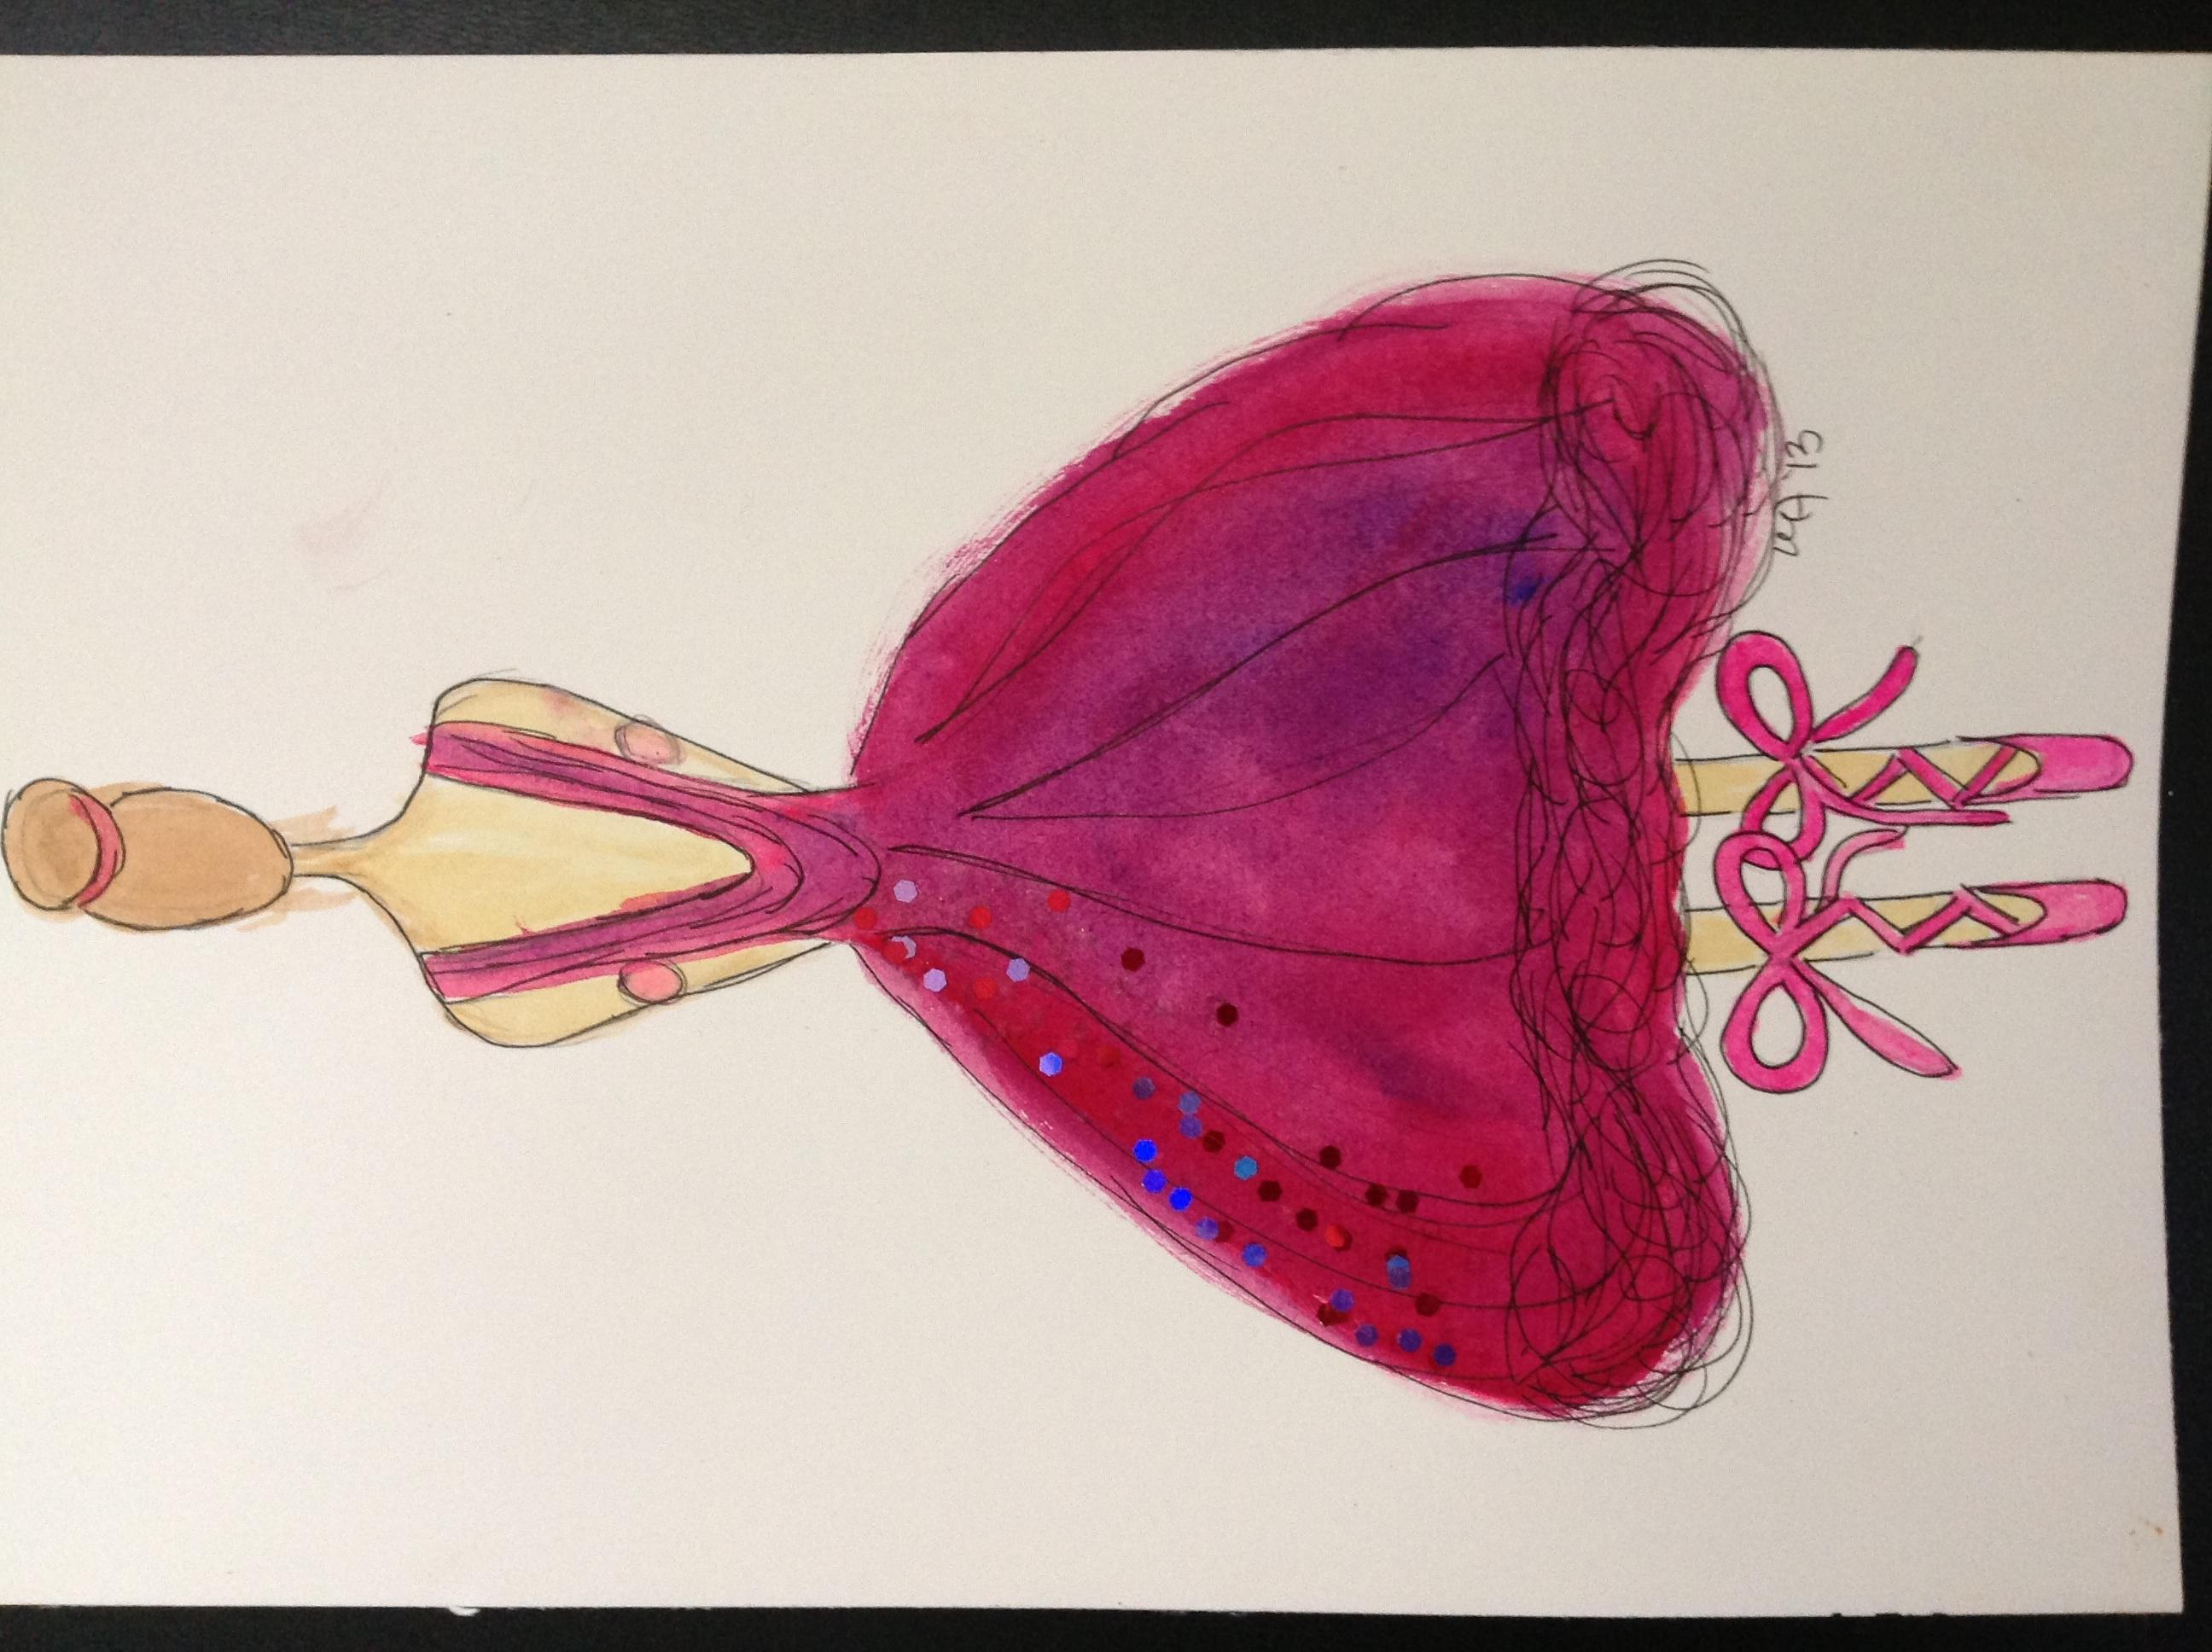 FINAL WATERCOLOR AND SKETCHES Sparkle and Lace - image 2 - student project